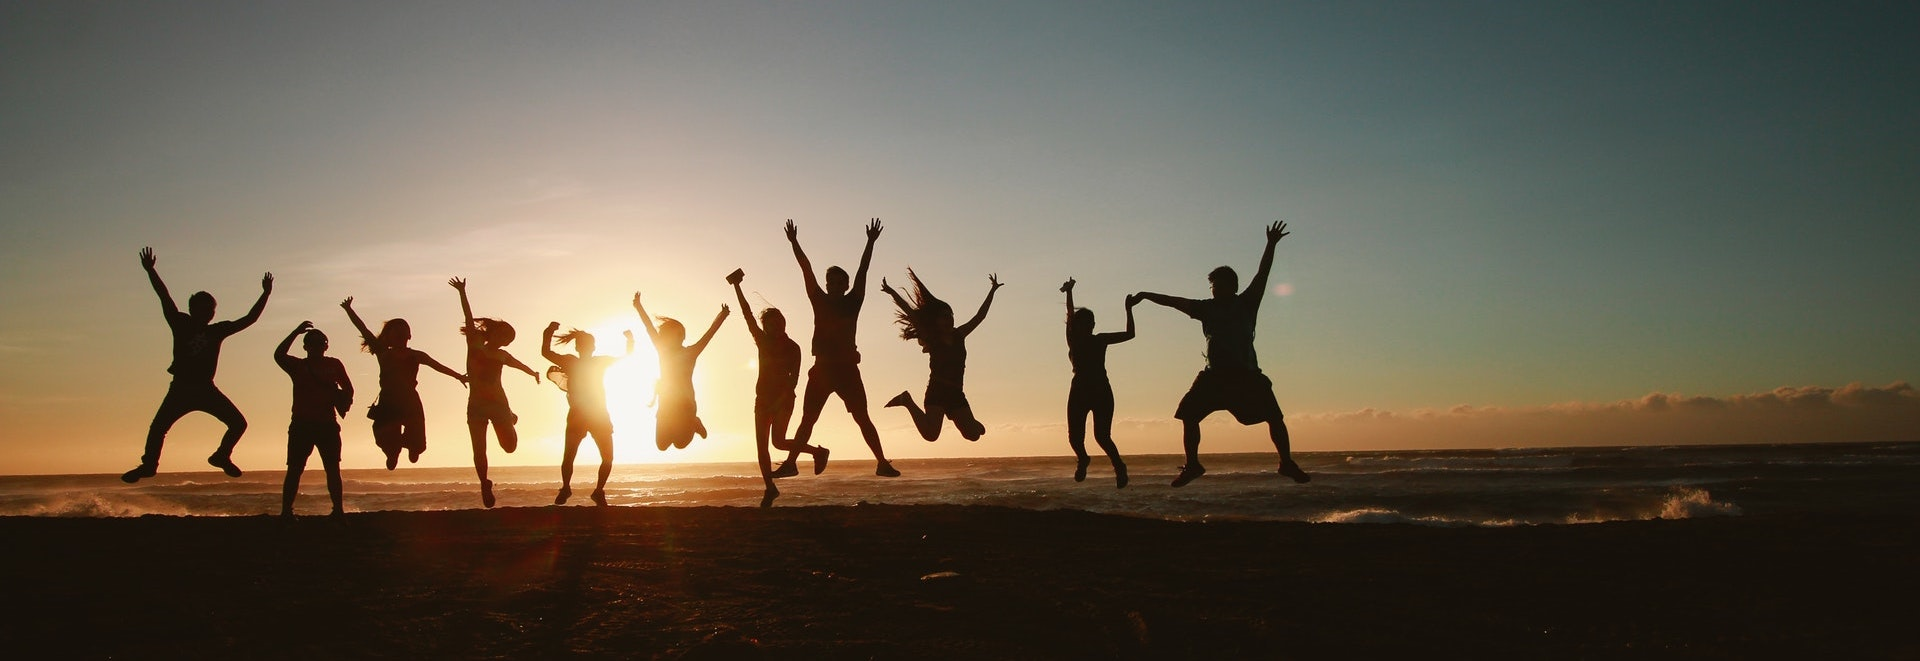 people jumping with sunset background